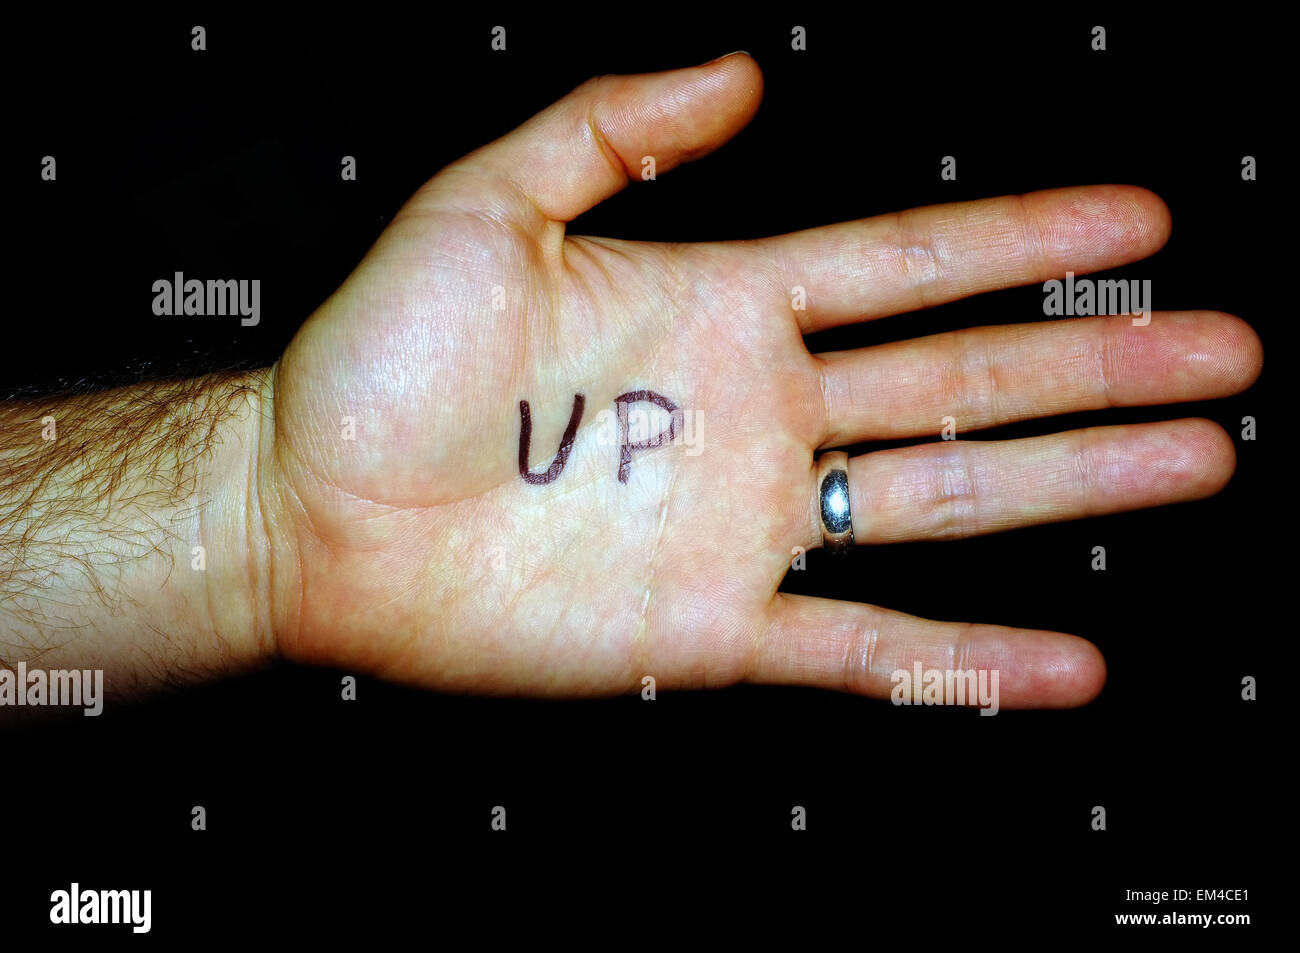 Up written on a white man's hand photographed against a black background. - Stock Image